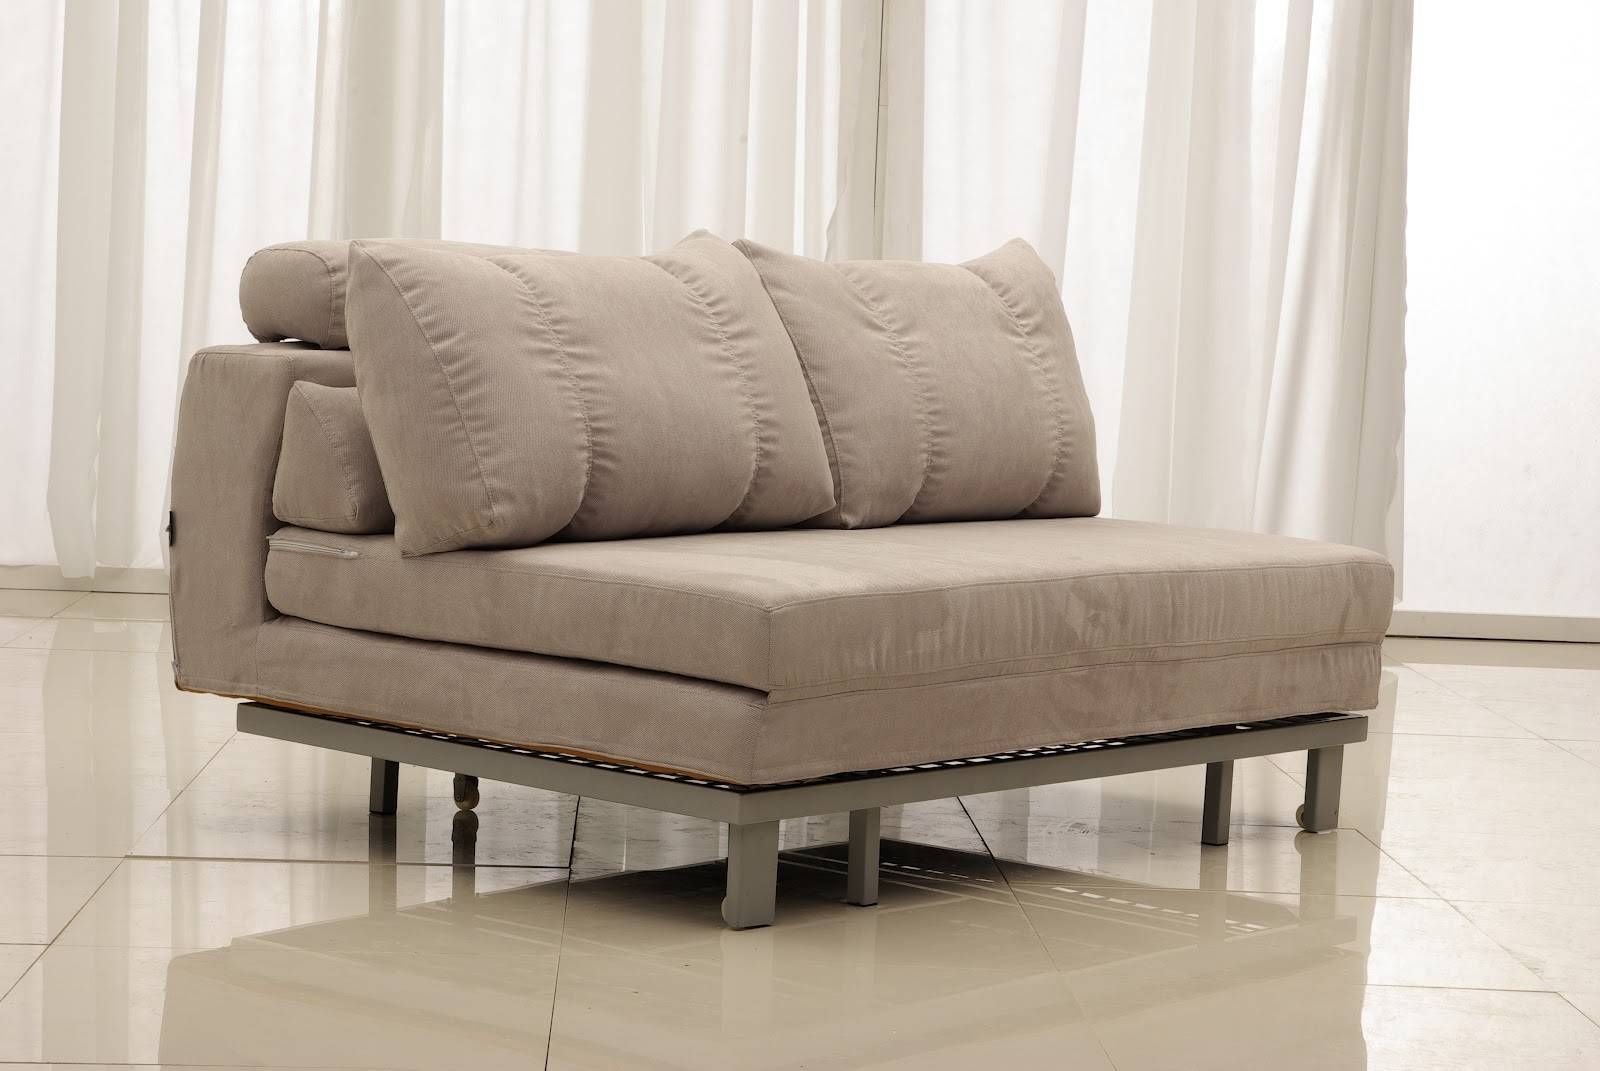 Beautiful Most Comfortable Sleeper Sofa 2017 80 With Additional in Sleeper Sofas San Diego (Image 2 of 25)